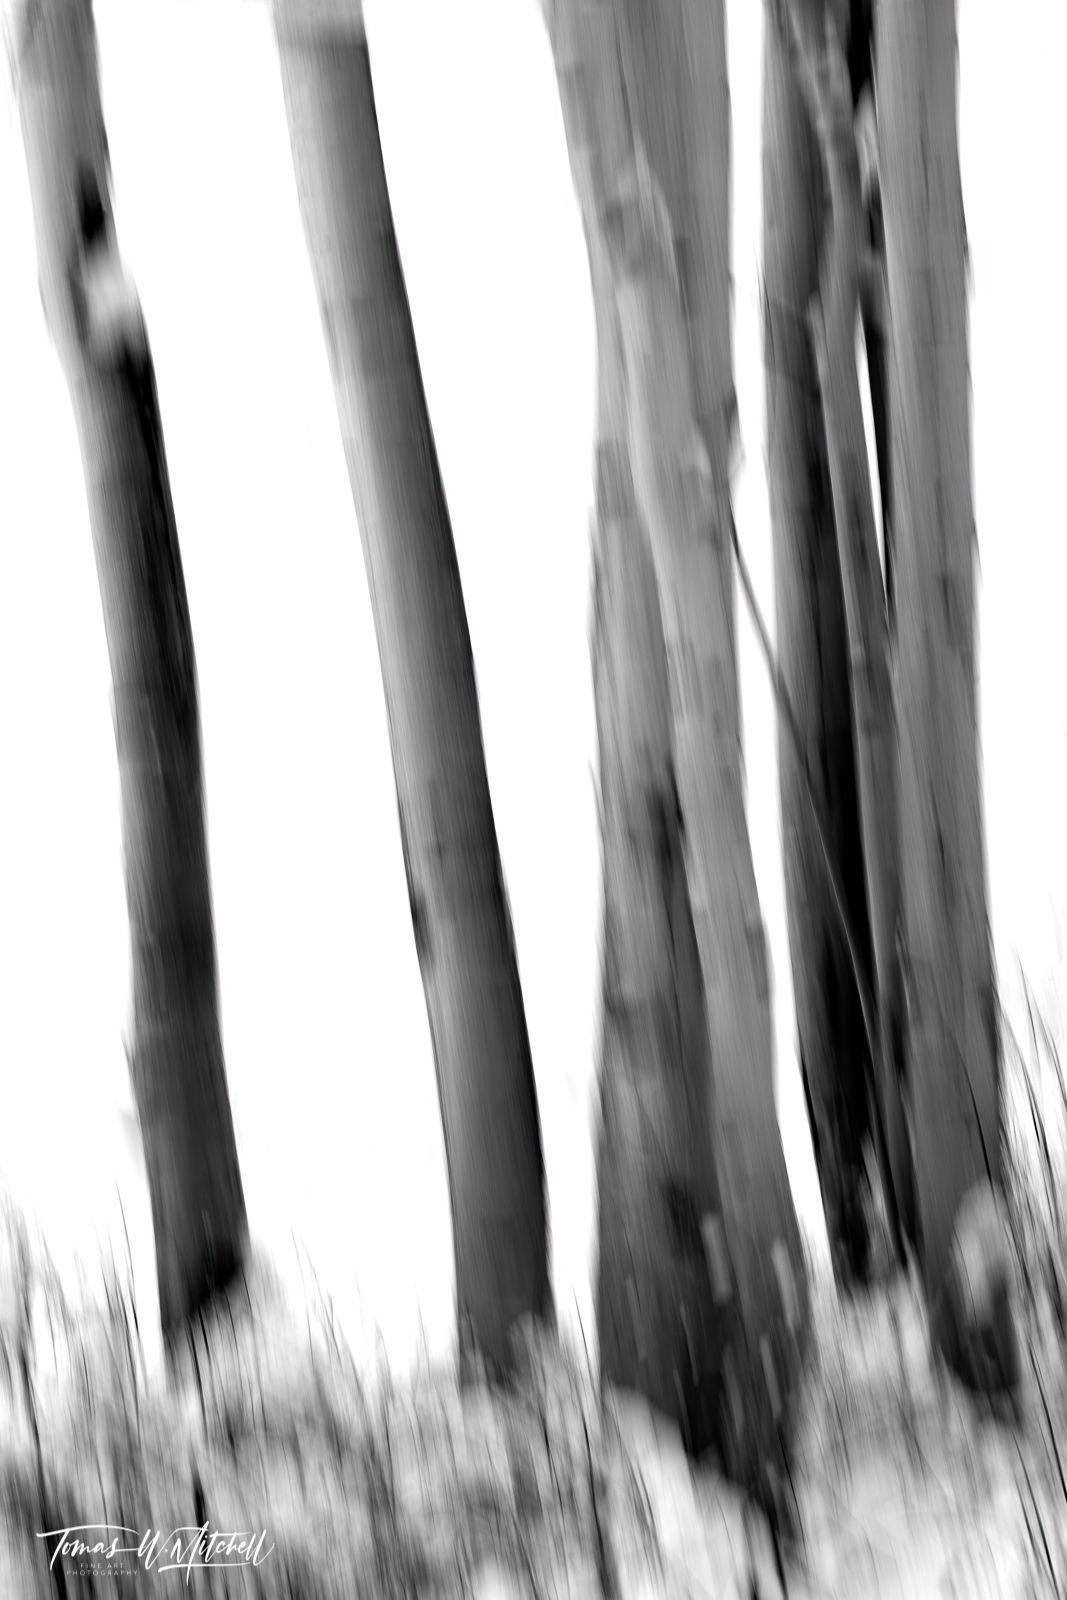 UINTA-WASATCH-CACHE NATIONAL FOREST, UTAH, limited edition, fine art, prints, snowstorm, aspen trees, snow, blur, photograph, black and white, abstract, winter, photo